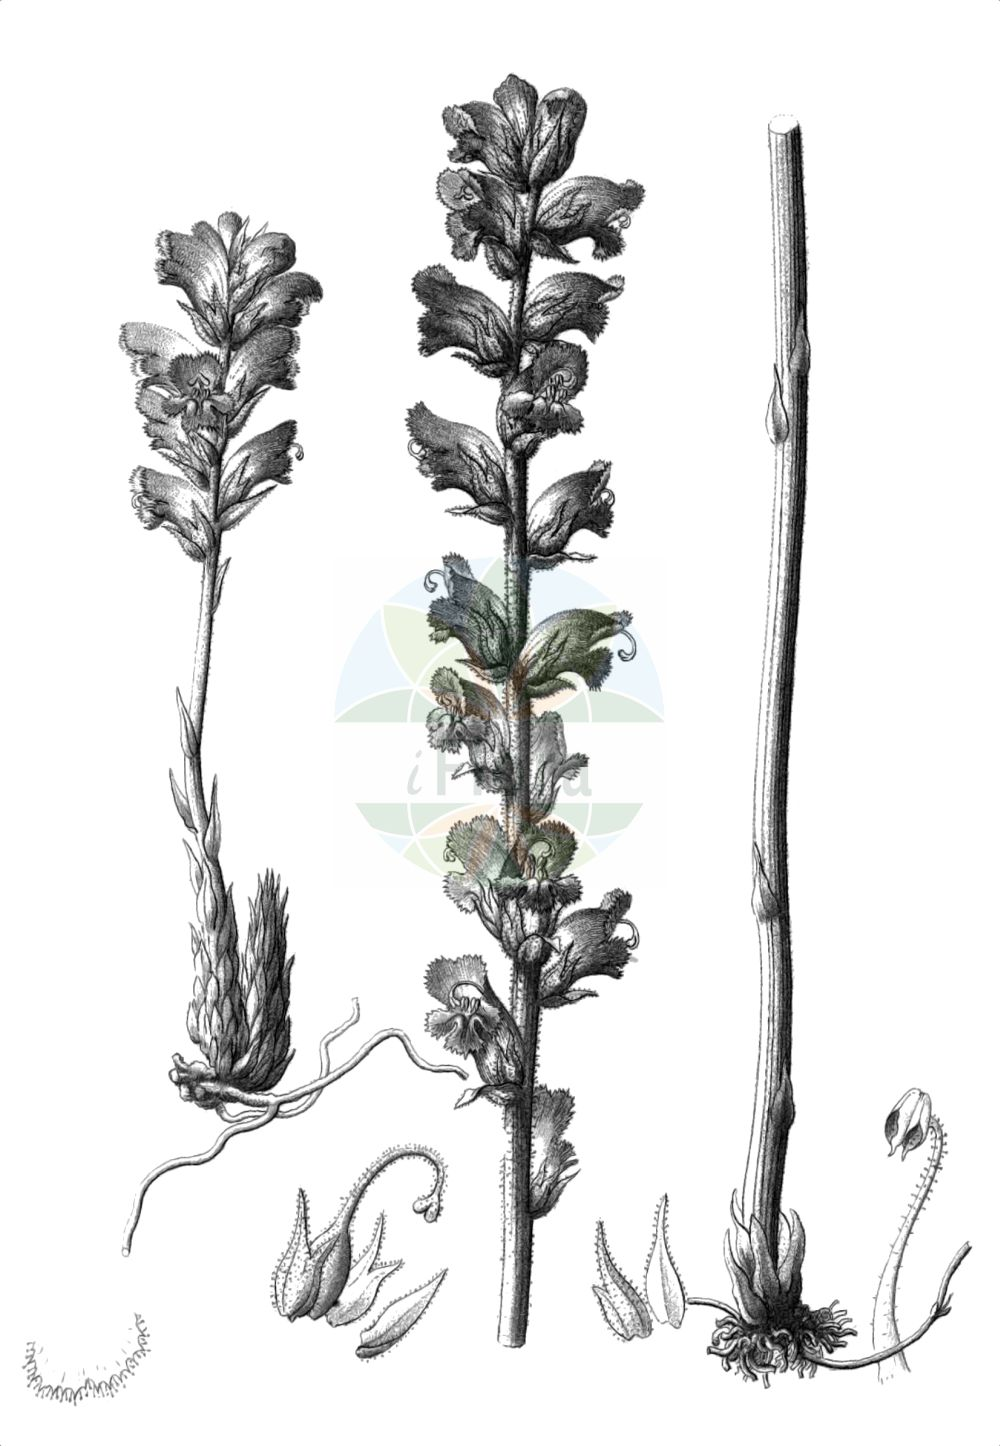 Historische Abbildung von Orobanche gracilis (Blutrote Sommerwurz - Slender Broomrape). Das Bild zeigt Blatt, Bluete, Frucht und Same. ---- Historical Drawing of Orobanche gracilis (Blutrote Sommerwurz - Slender Broomrape).The image is showing leaf, flower, fruit and seed.(Orobanche gracilis,Blutrote Sommerwurz,Slender Broomrape,Orobanche austrohispanica,Orobanche breviflora,Orobanche cruenta,Orobanche gracilis,Orobanche grandiuscula,Orobanche spruneri,Orobanche tetuanensis,Orobanche todaroi,Blutrote Sommerwurz,Zierliche Sommerwurz,Slender Broomrape,Orobanche,Sommerwurz,Broomrape,Orobanchaceae,Sommerwurzgewaechse,Broomrape family,Blatt,Bluete,Frucht,Same,leaf,flower,fruit,seed,Reichenbach (1823-1832))